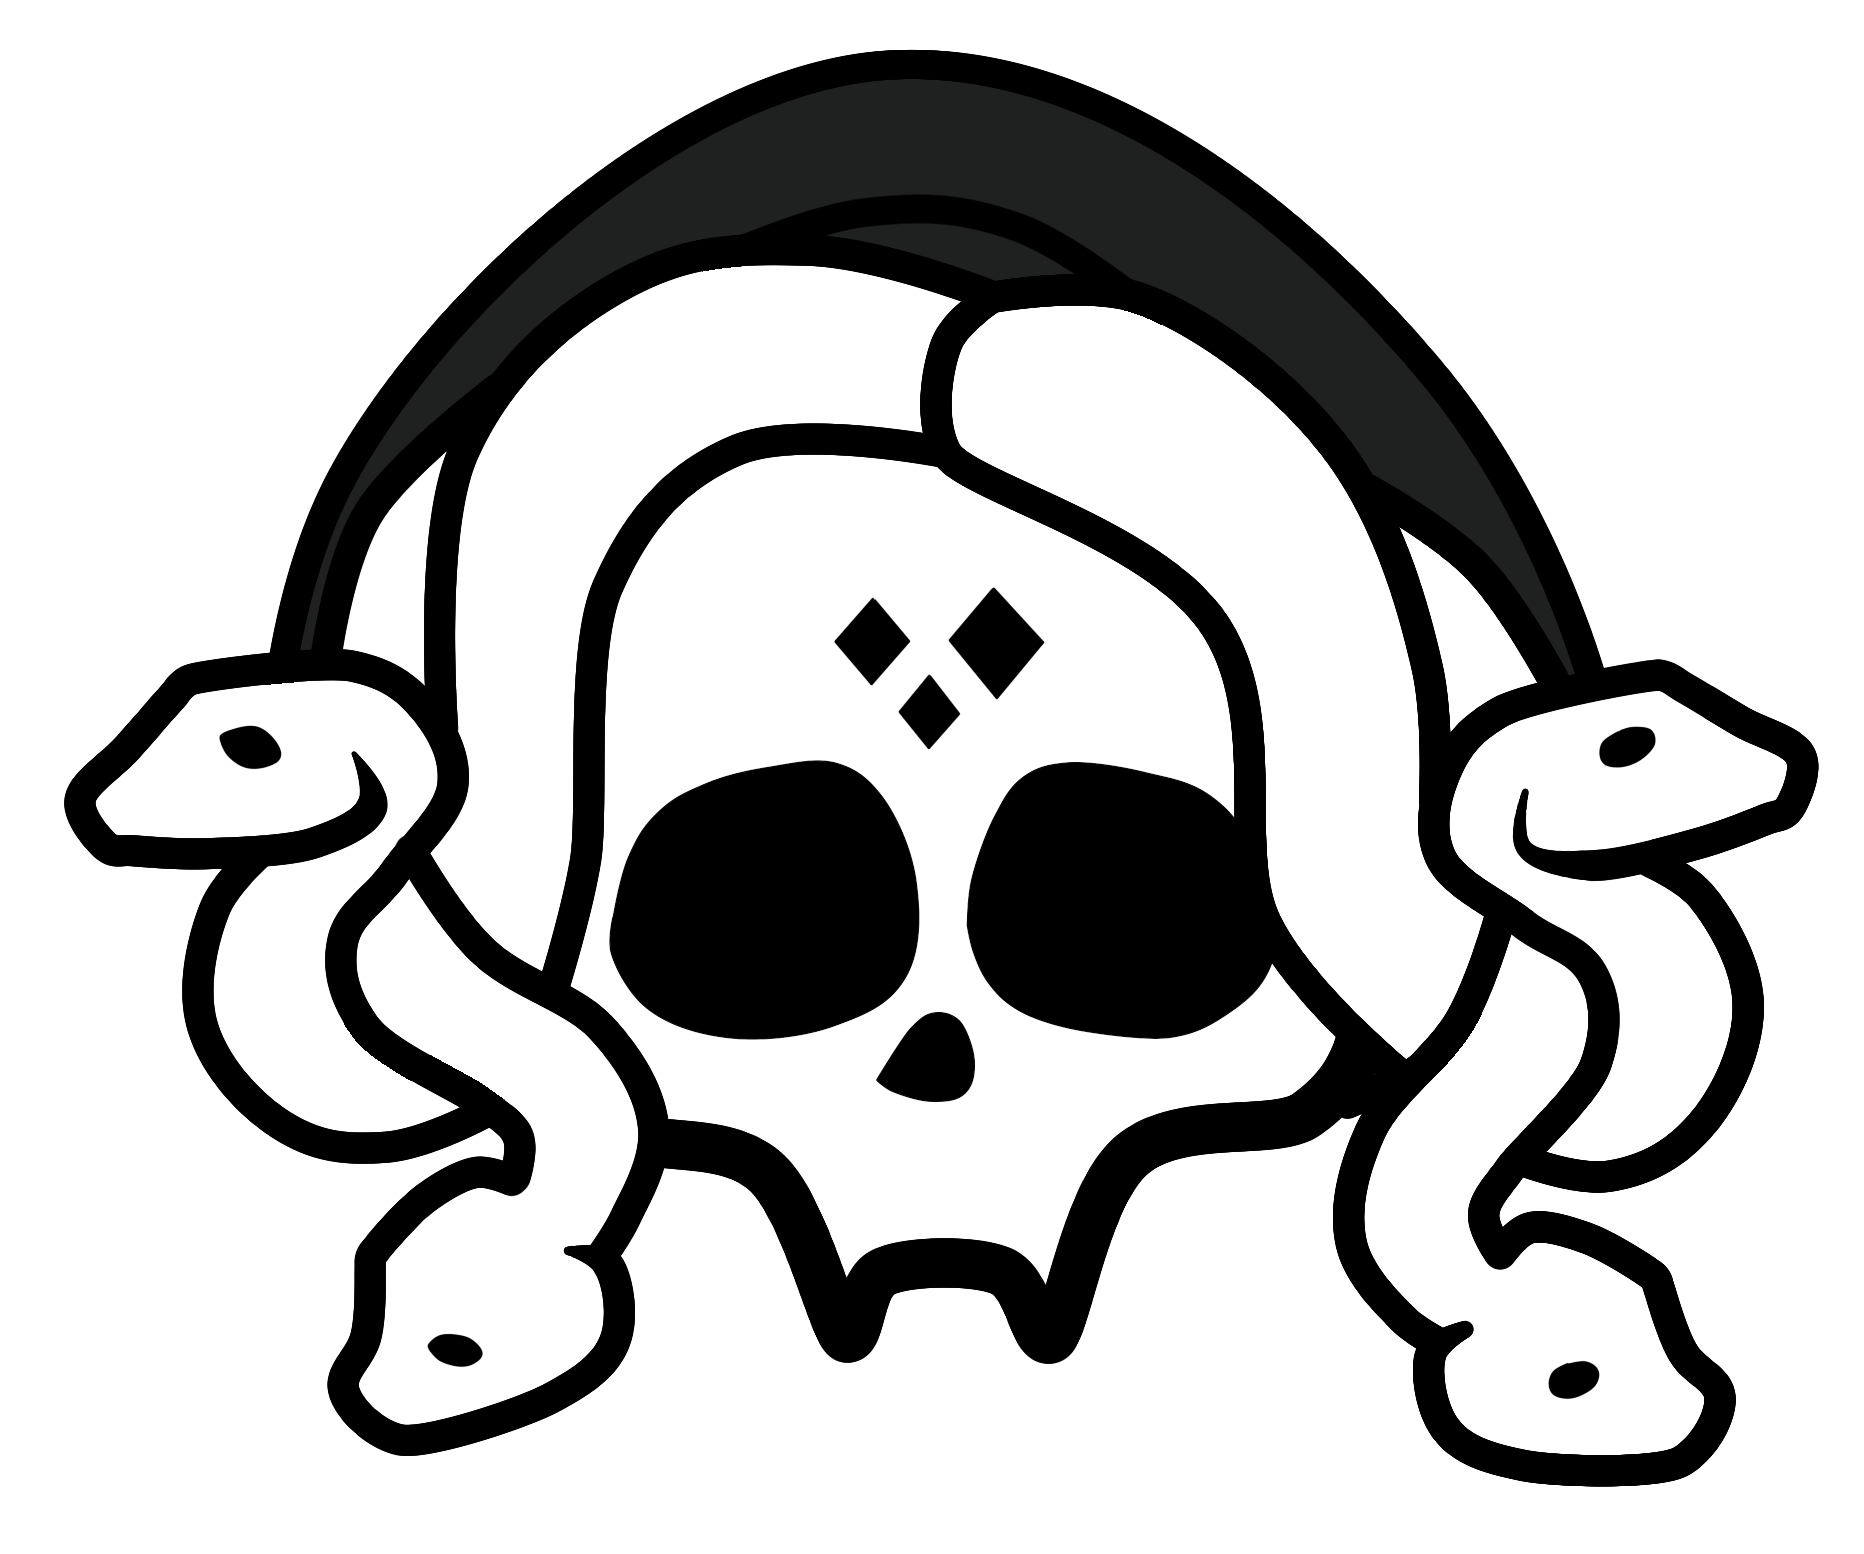 Viper logo fangs black and white png. Serpentine monster high fandom